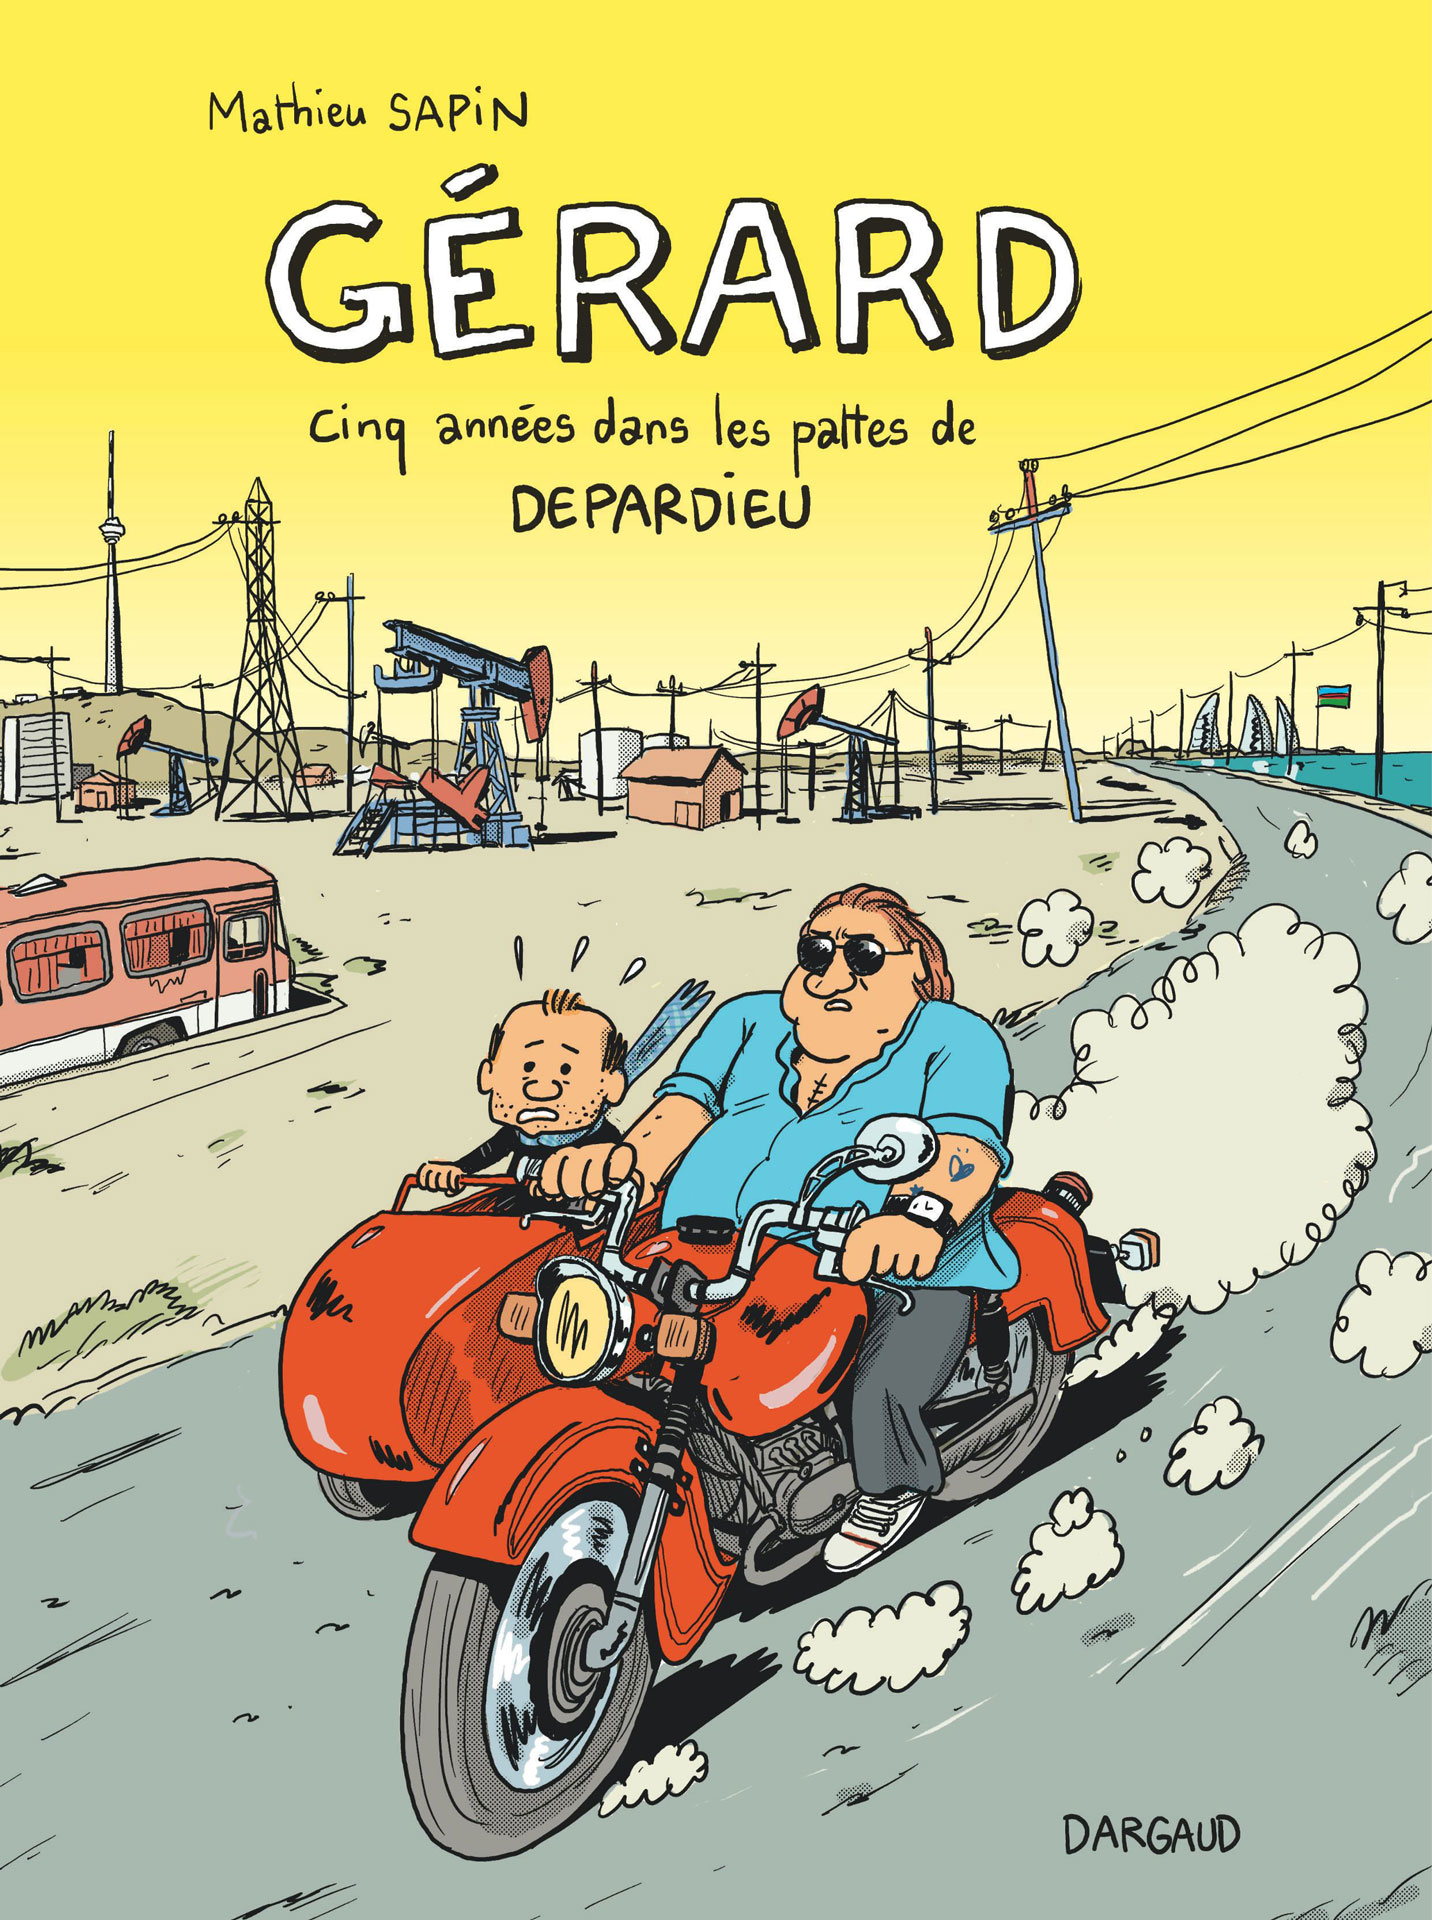 cover of comic Gerard by Mathieu Sapin